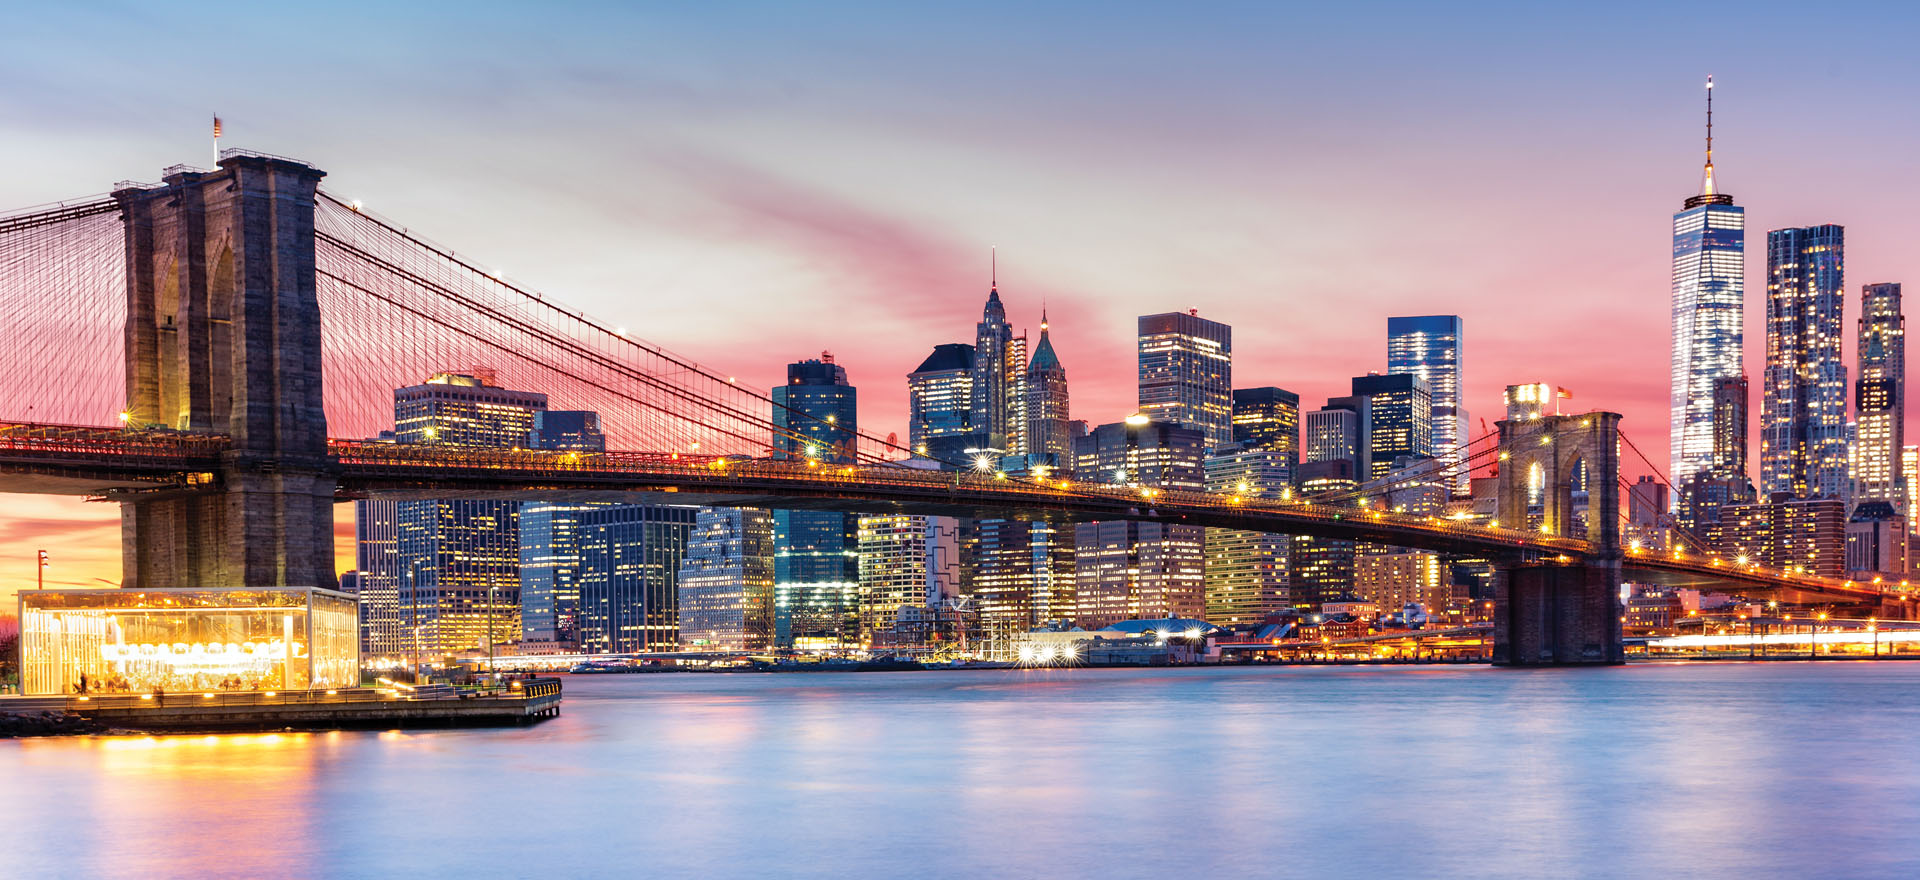 New York City   Brooklyn Bridge   Escorted Tours for Solo Travellers